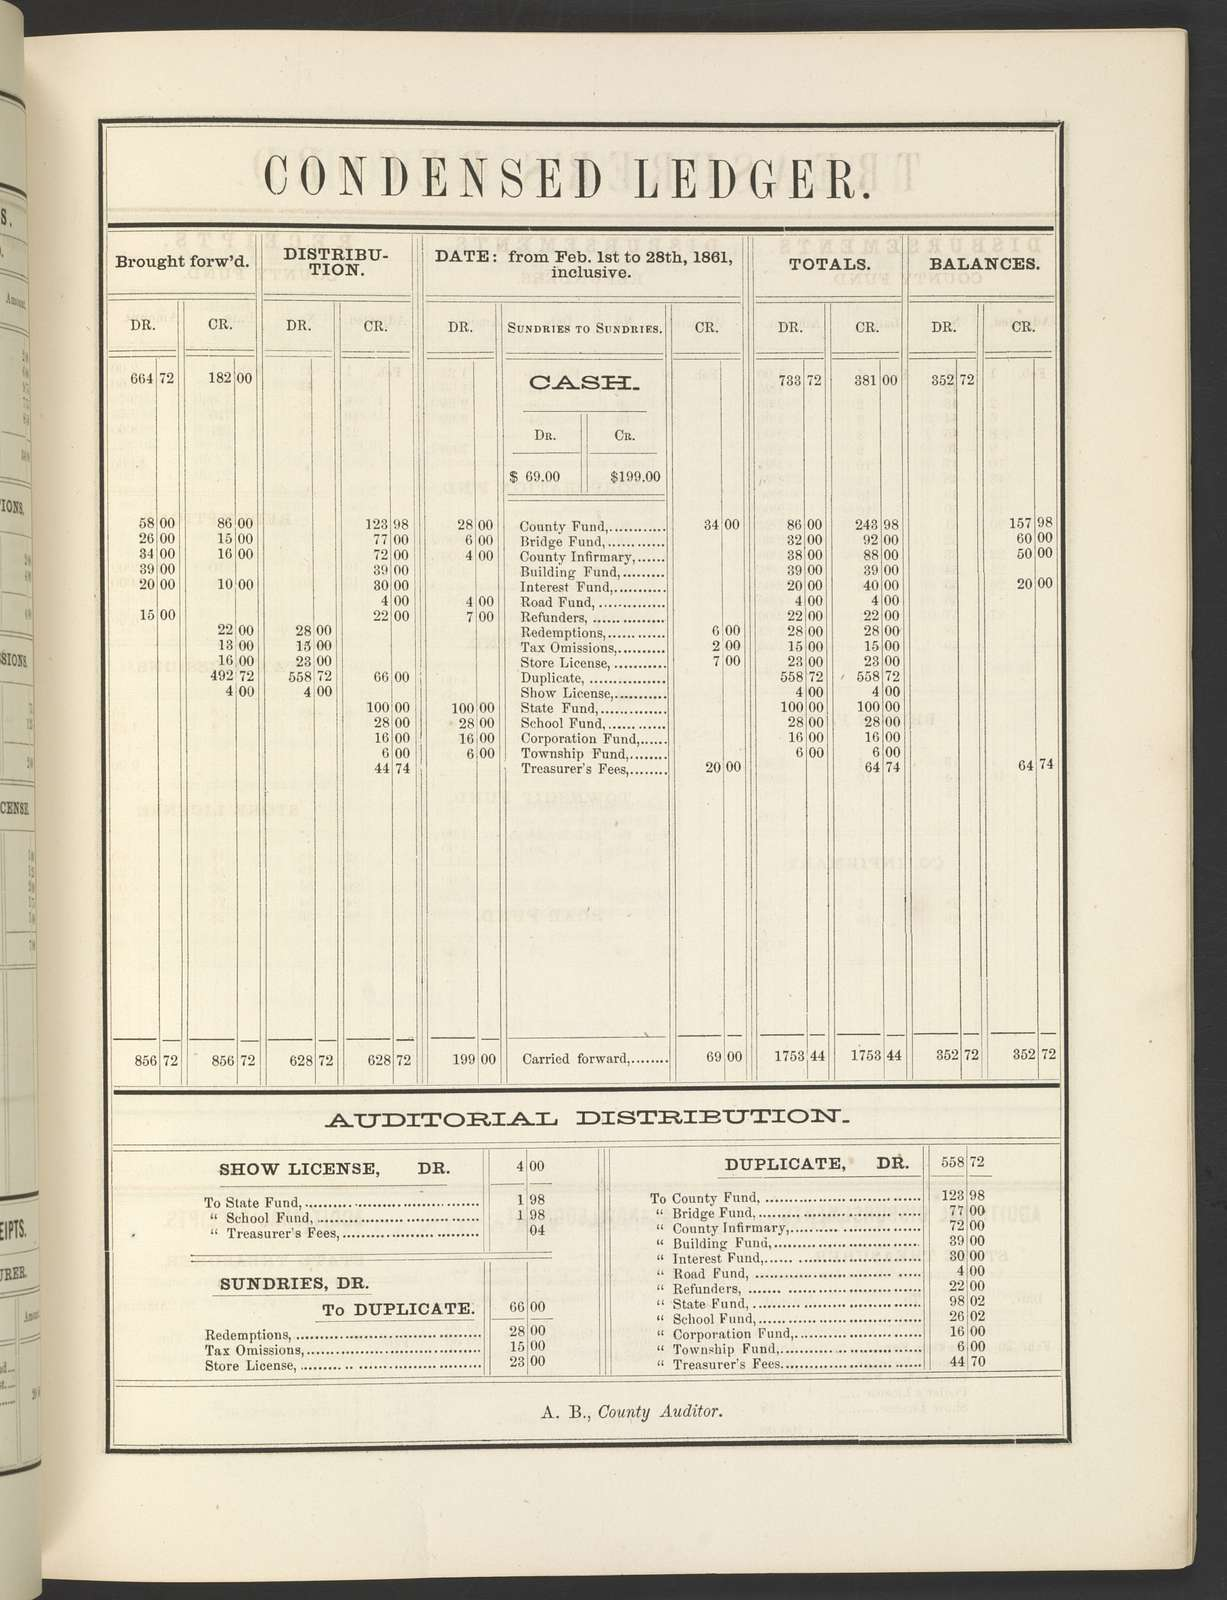 Selden's condensed ledger and condensed memorandum book; and forms of record, condensed ledger, reports, and condensed memorandum book.